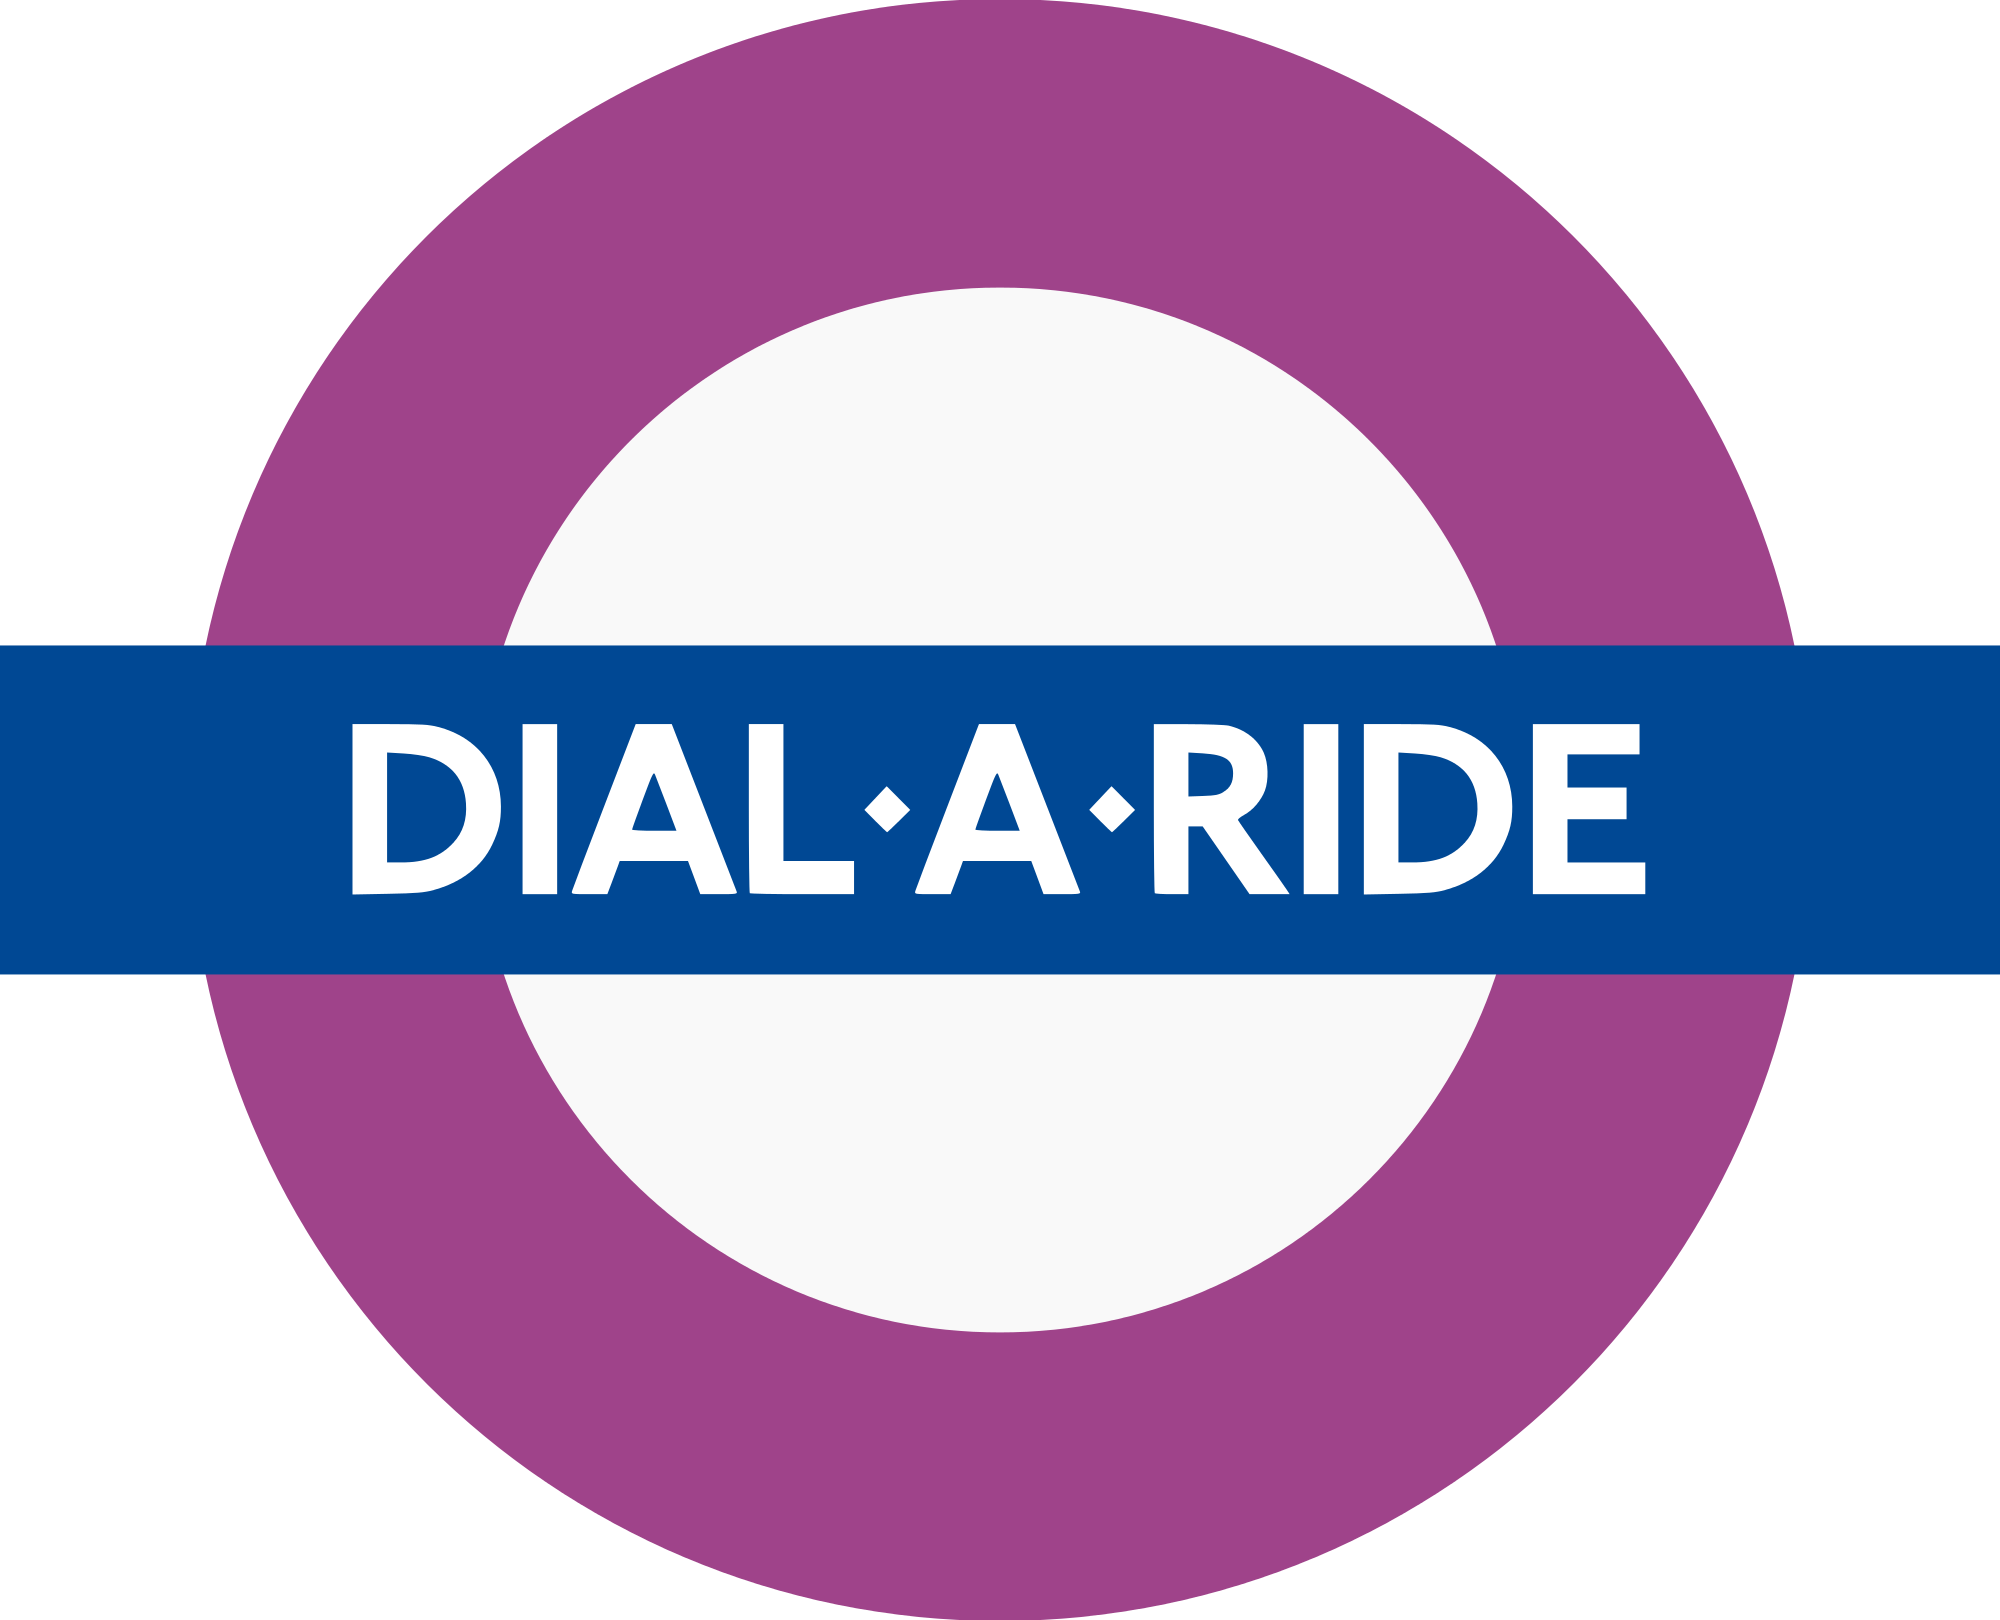 Community clipart council. The transport dial a